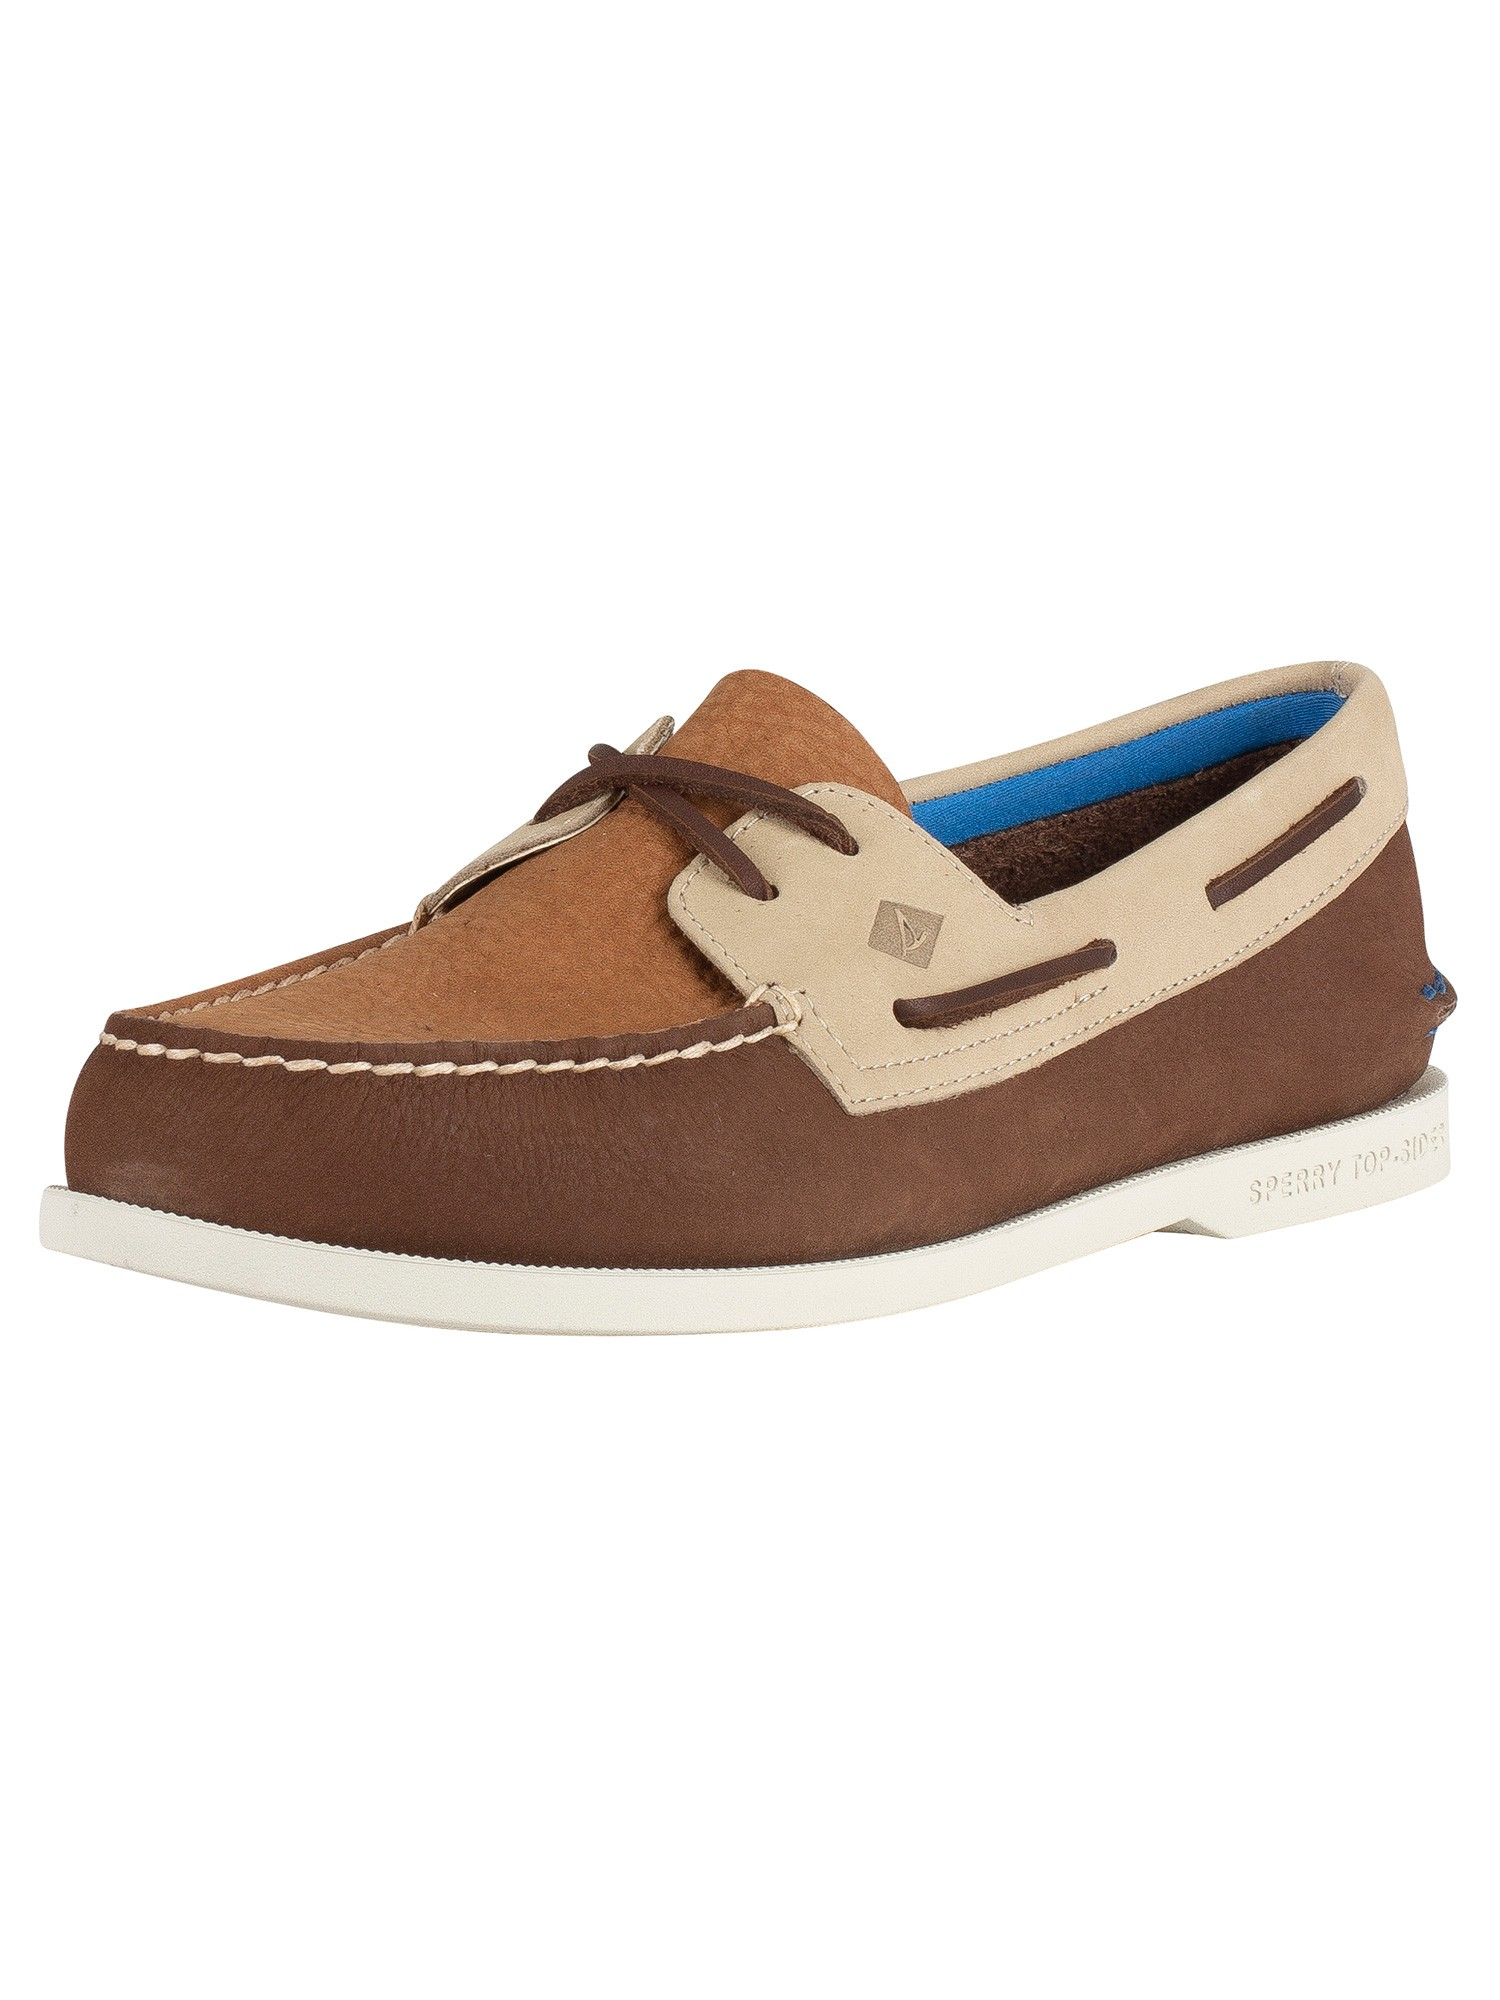 Sperry Top Sider AO 2 Eye Plush Washable Boat Shoes Brown Tan